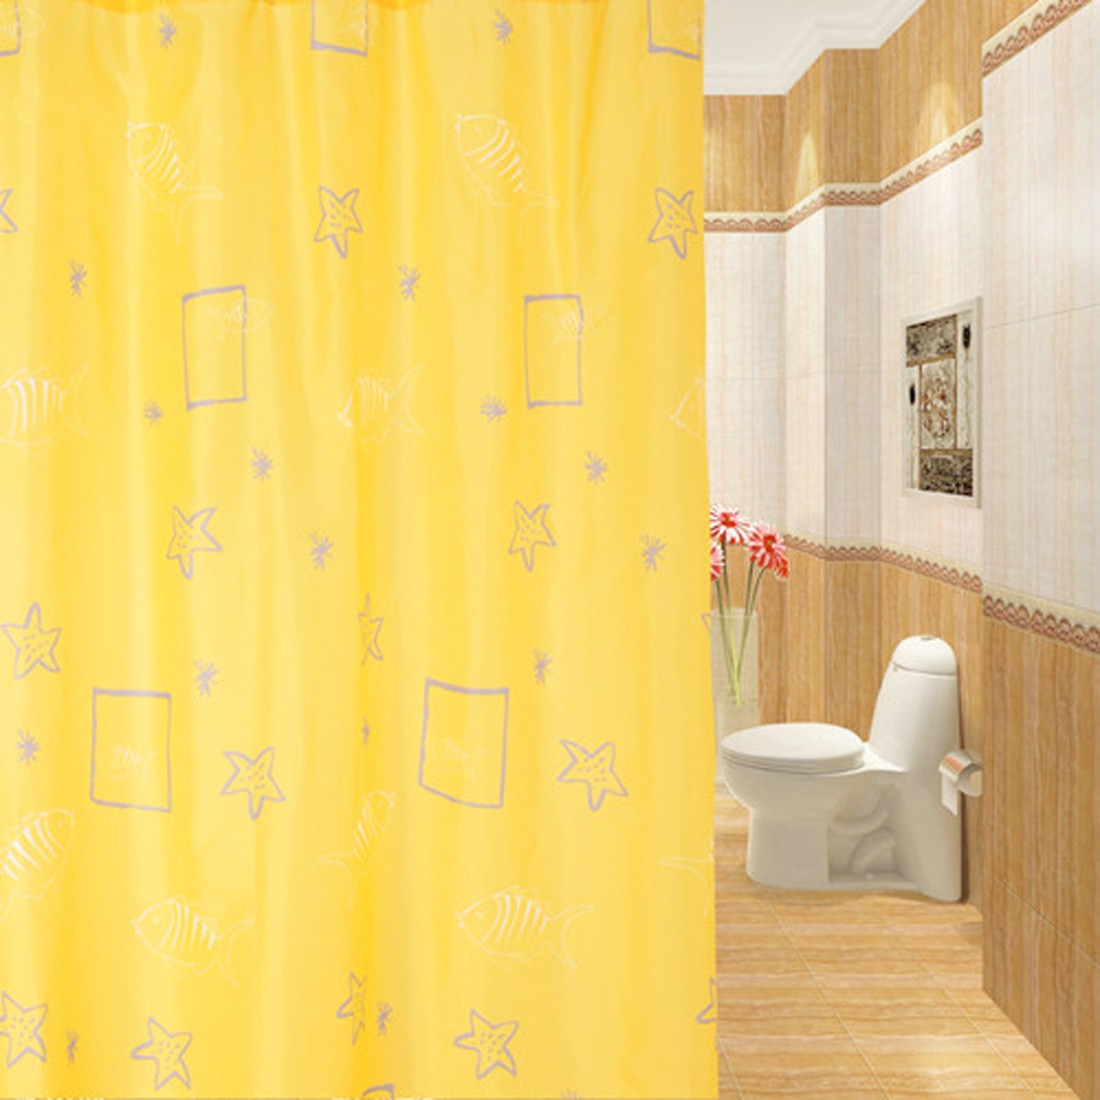 Home Printed Yellow Bathroom Waterproof Polyester Shower Curtain With Hooks Ebay